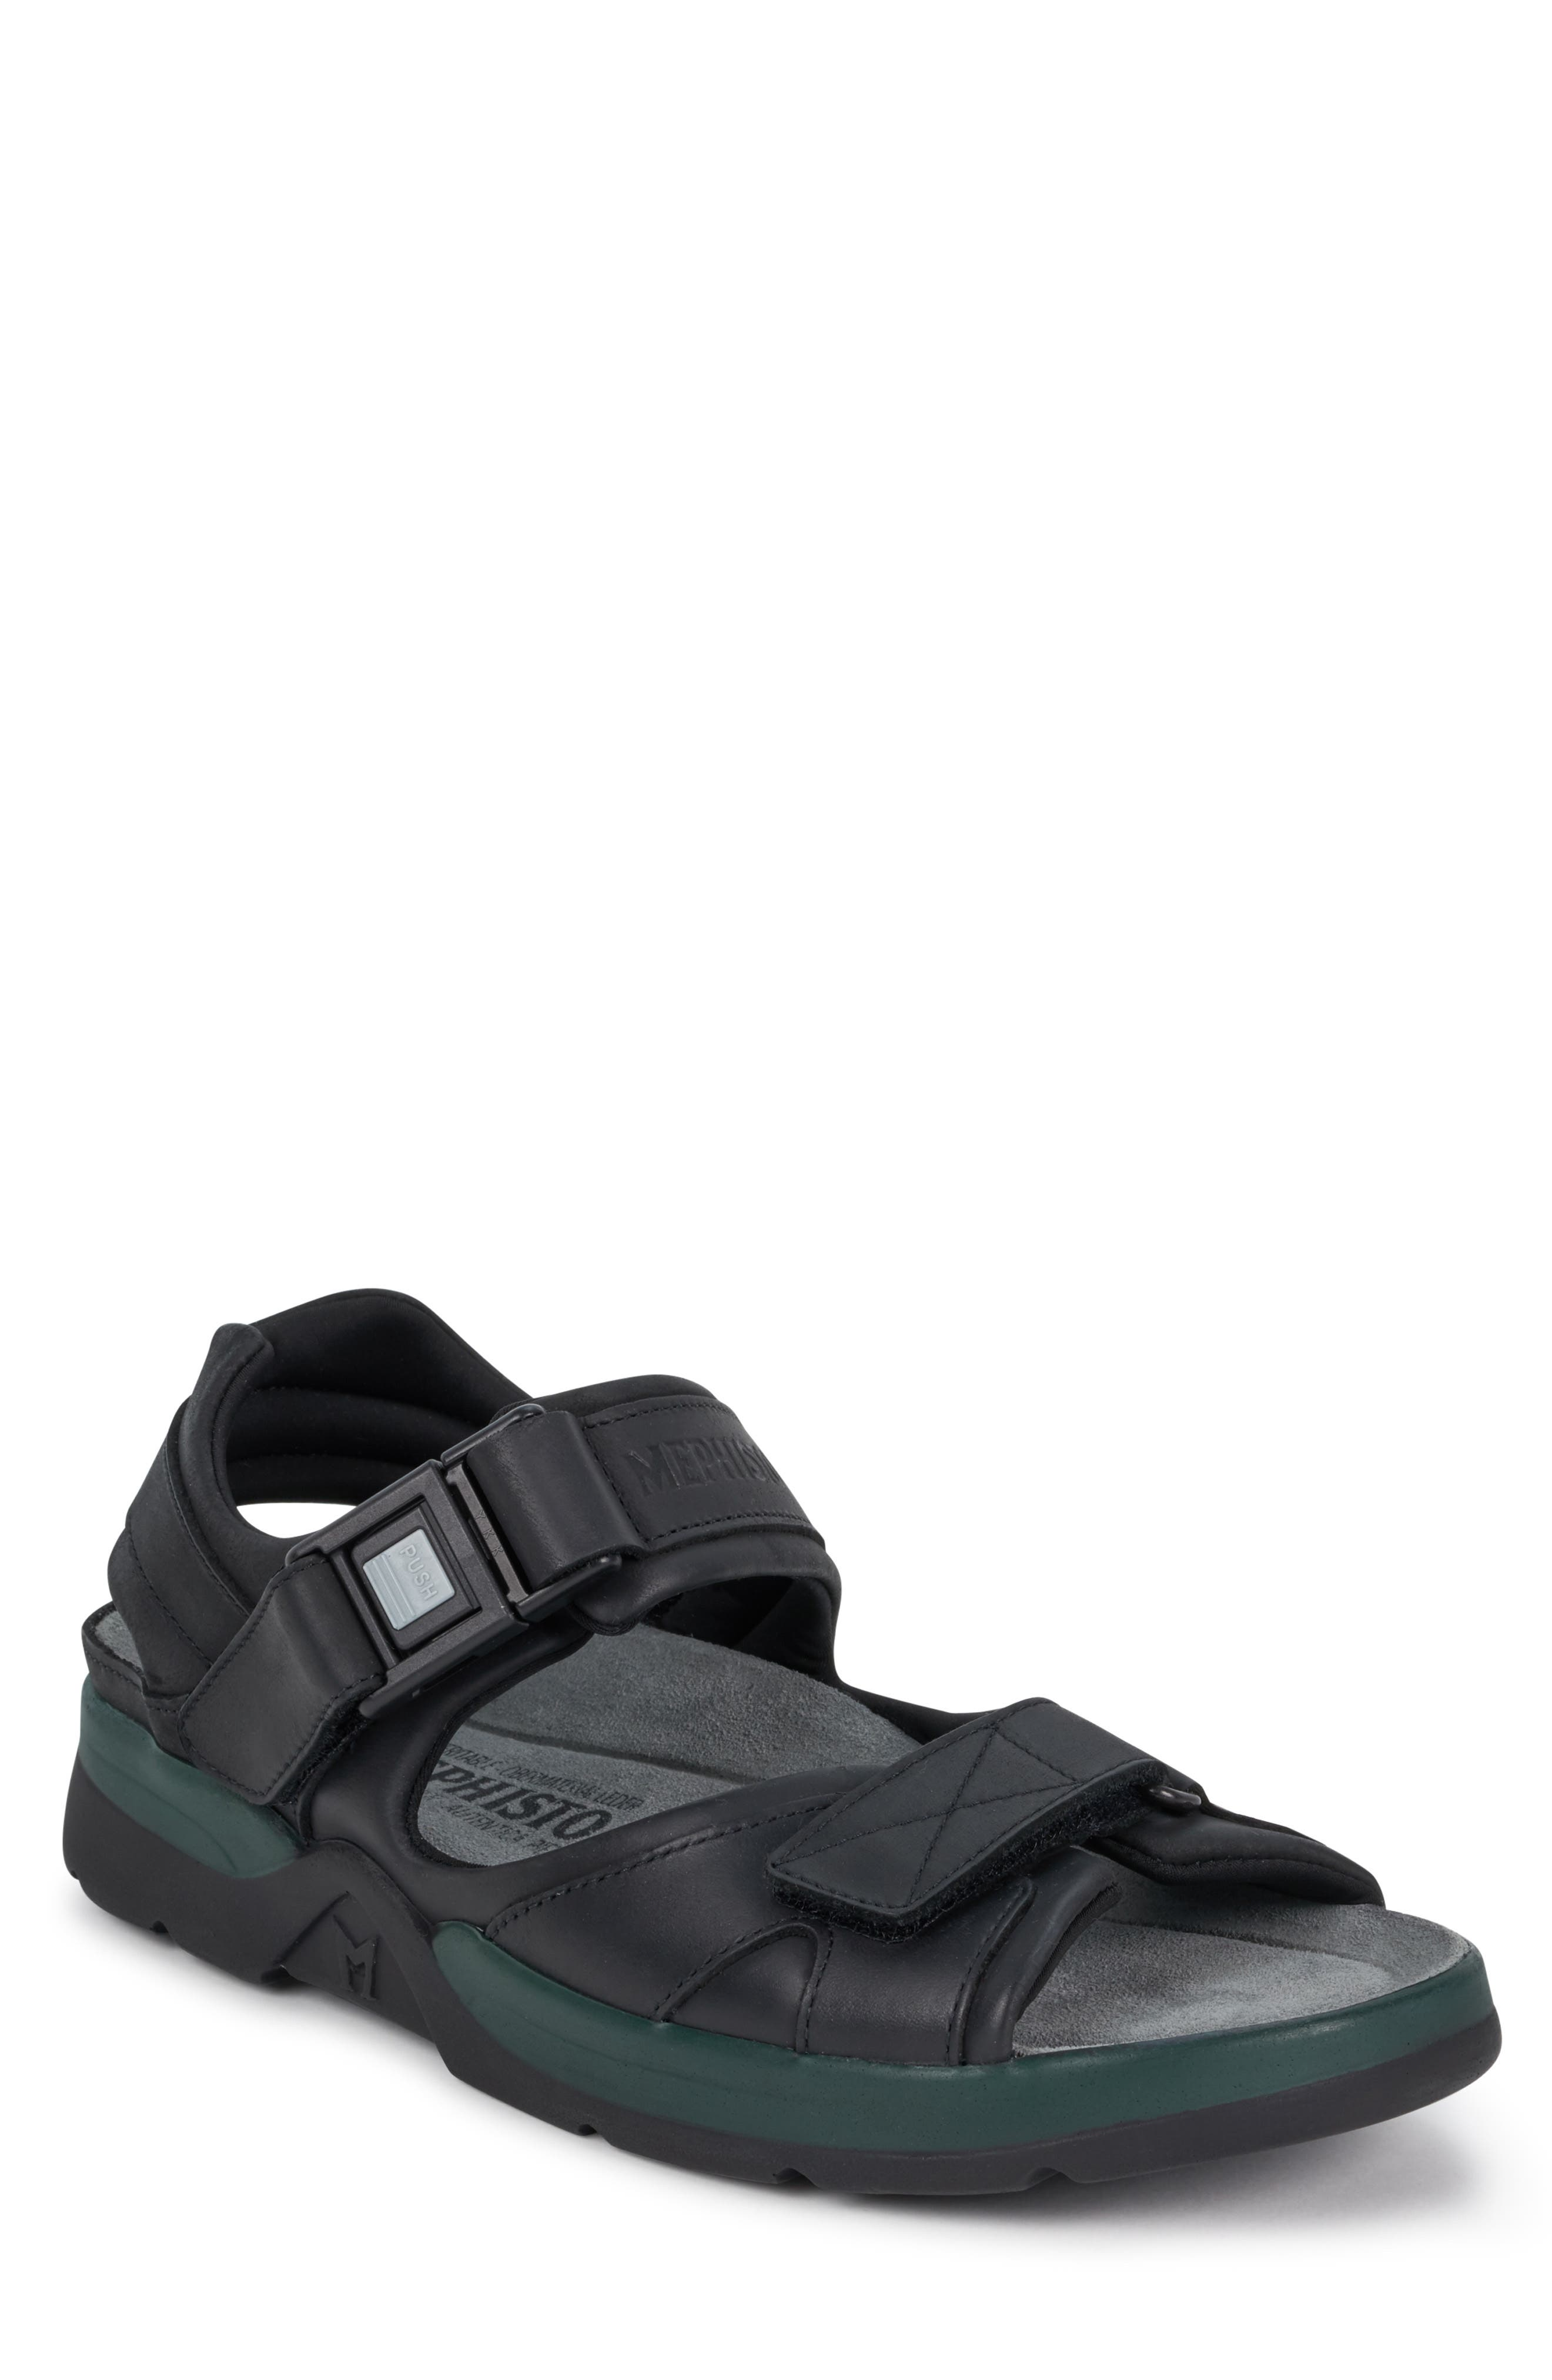 'Shark' Sandal, Main, color, BLACK WAXED LEATHER